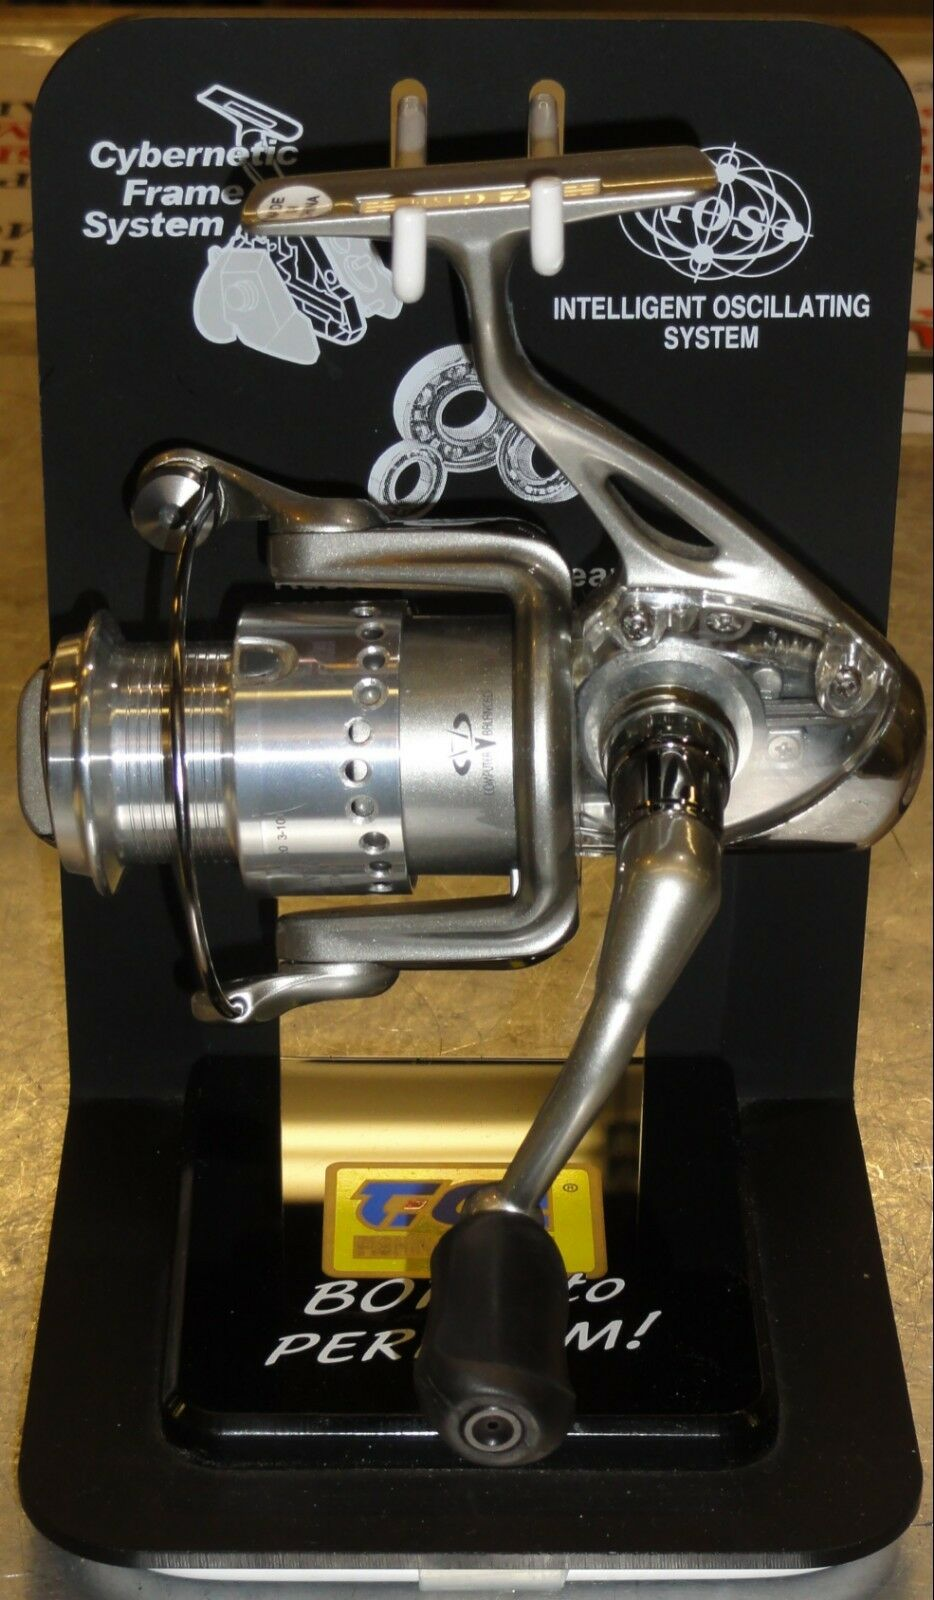 Tica Gainer GA2000 Spinning Reel w Transparent Body - New